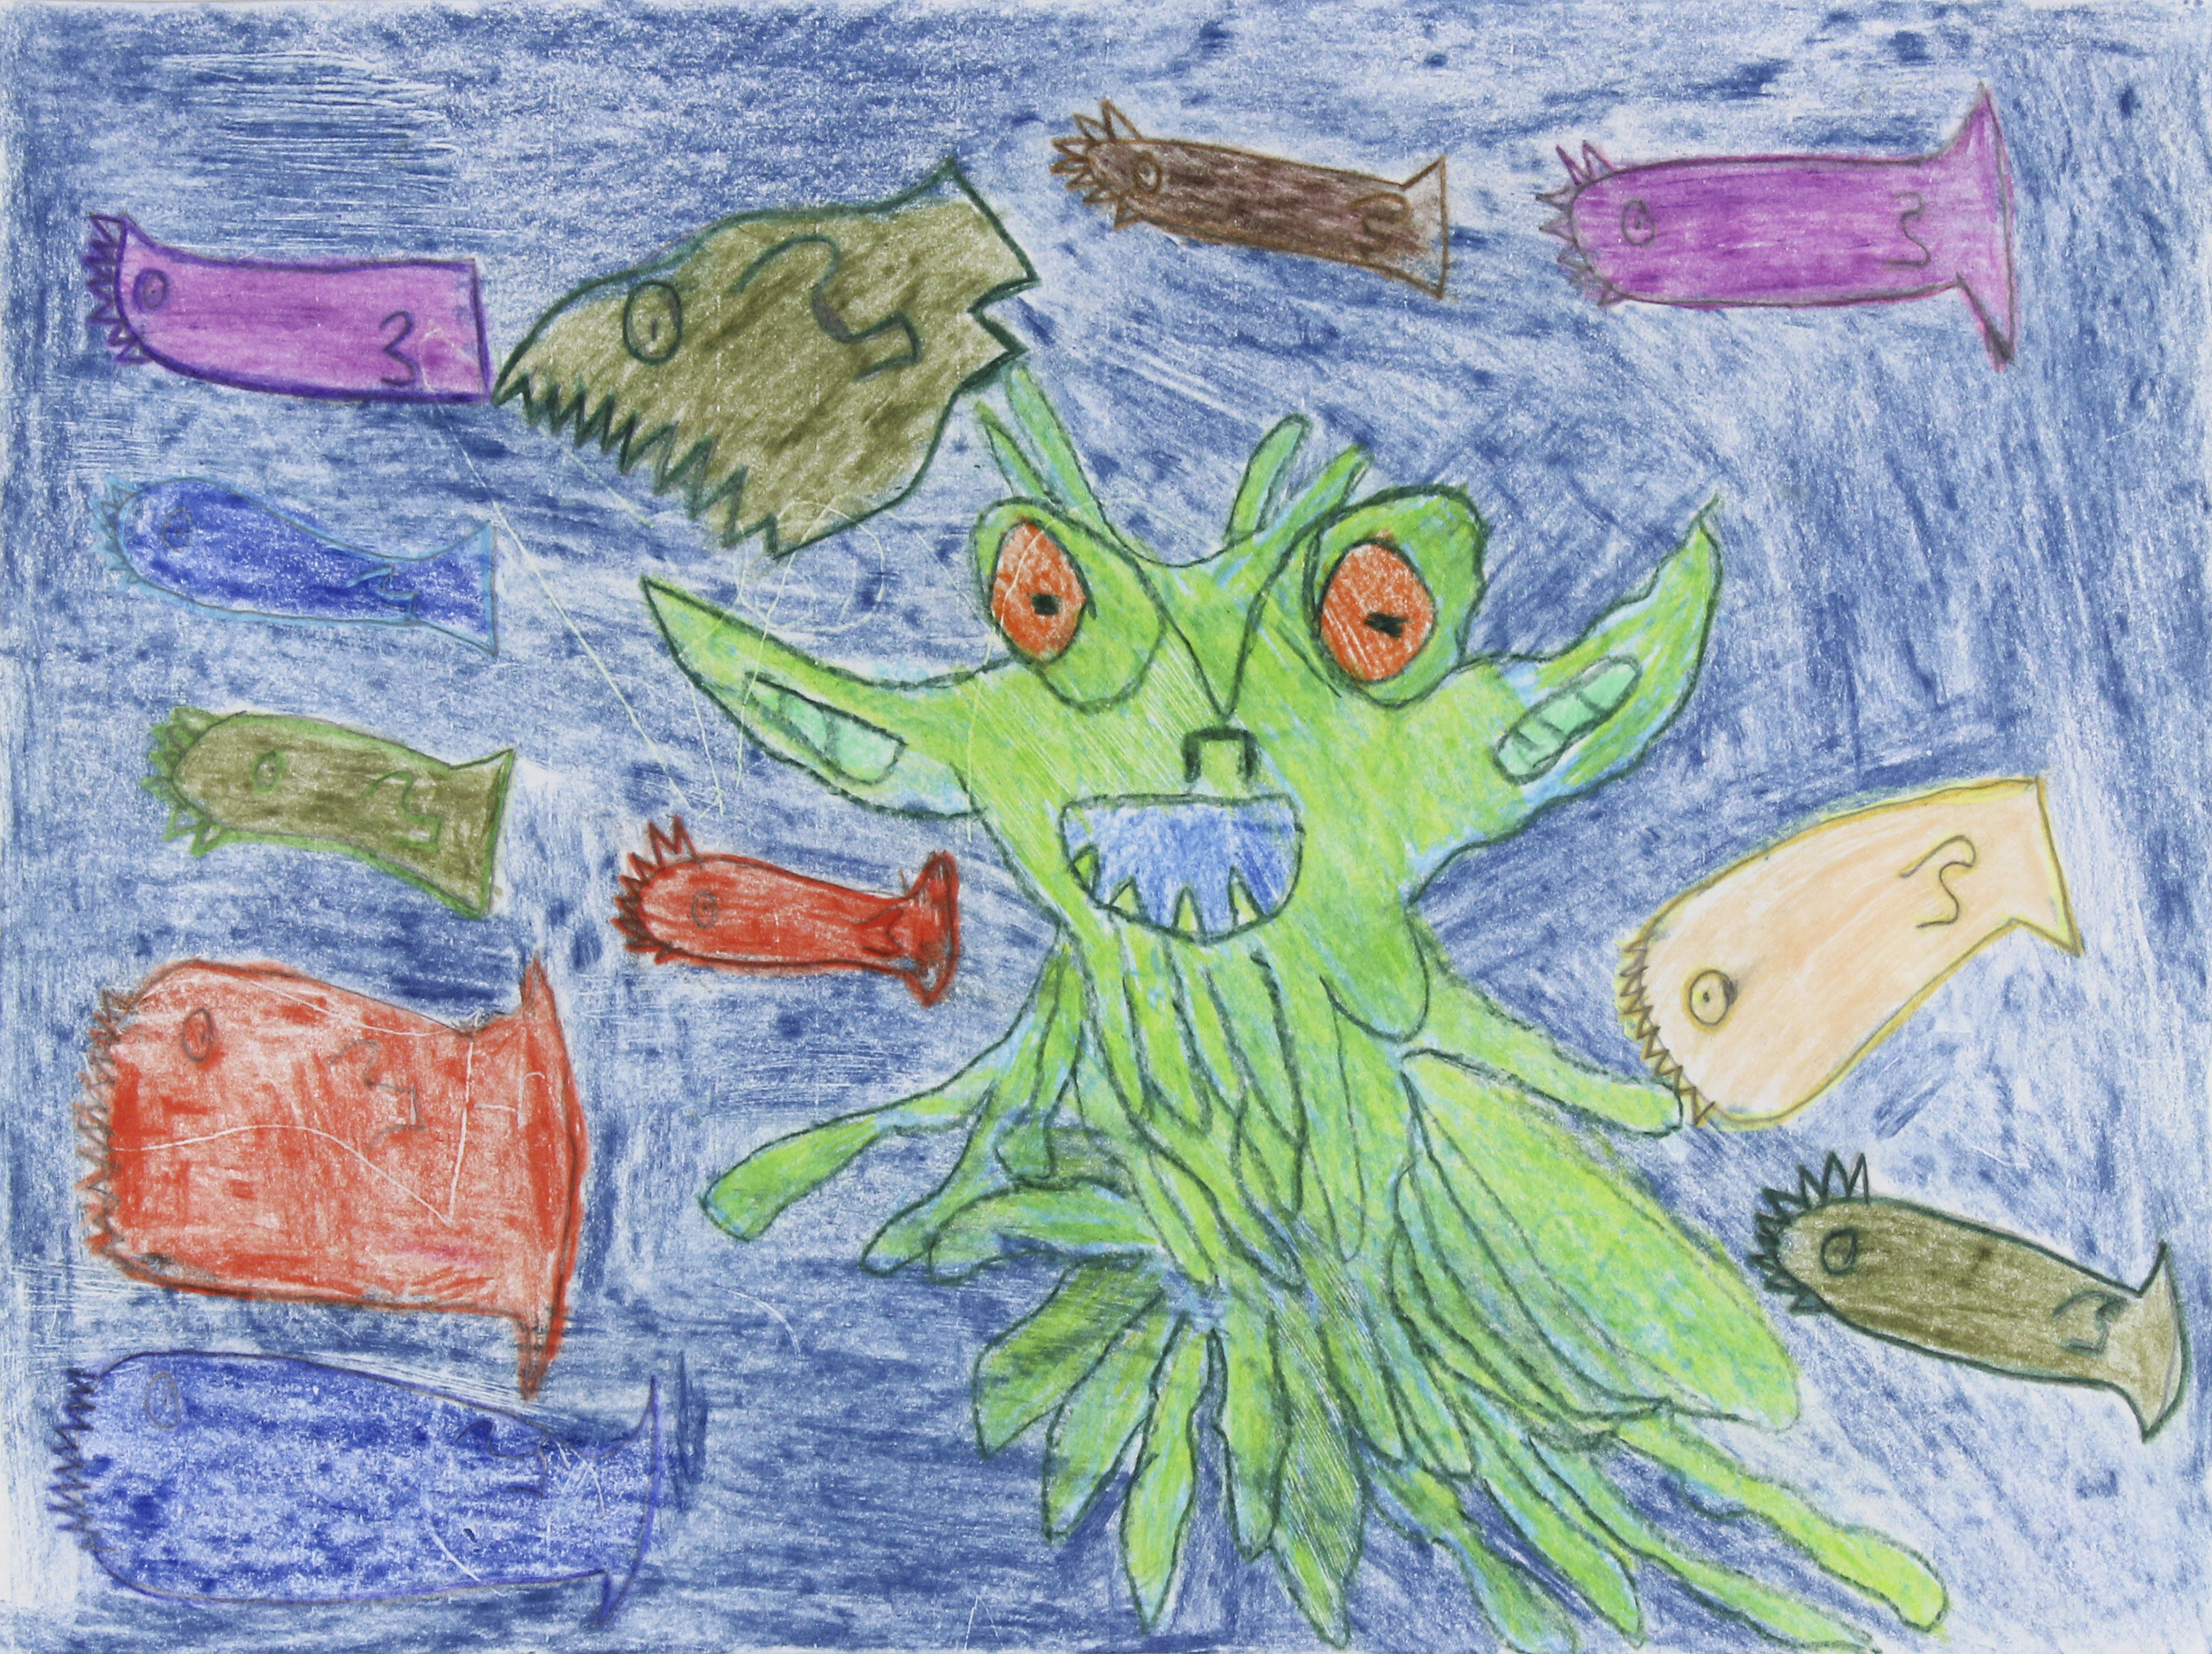 Foster_Barb_A Creature And Some Fishes Inside The Water_Colored Pencil on paper_14%22x11%22.png